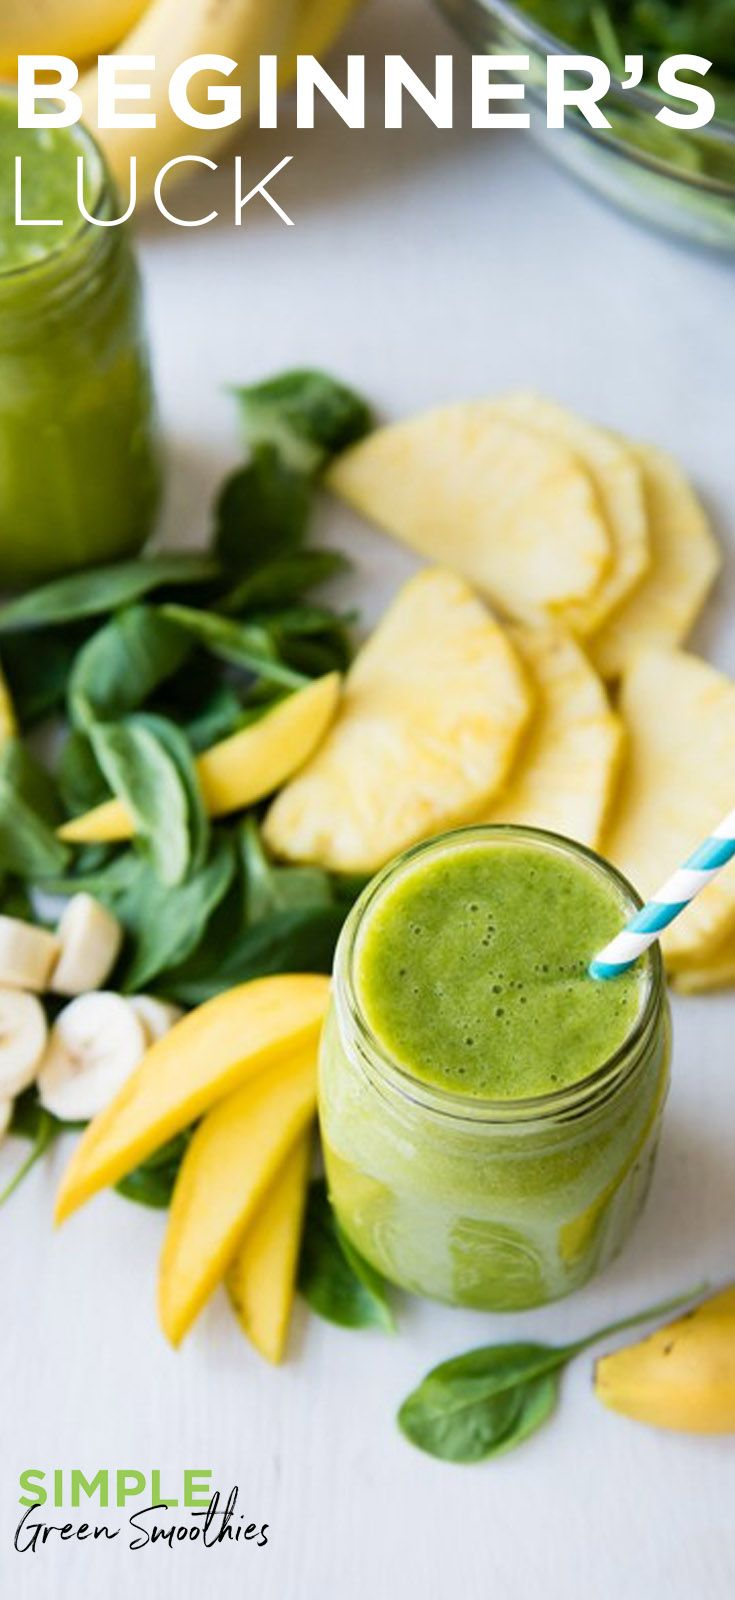 The Beginner's Luck Green Smoothie is a great beginner friendly green smoothie. It's full of iron, potassium and vitamins galore— AND tastes like a tropical treat from all the island fruit. I SimpleGreenSmoothies.com